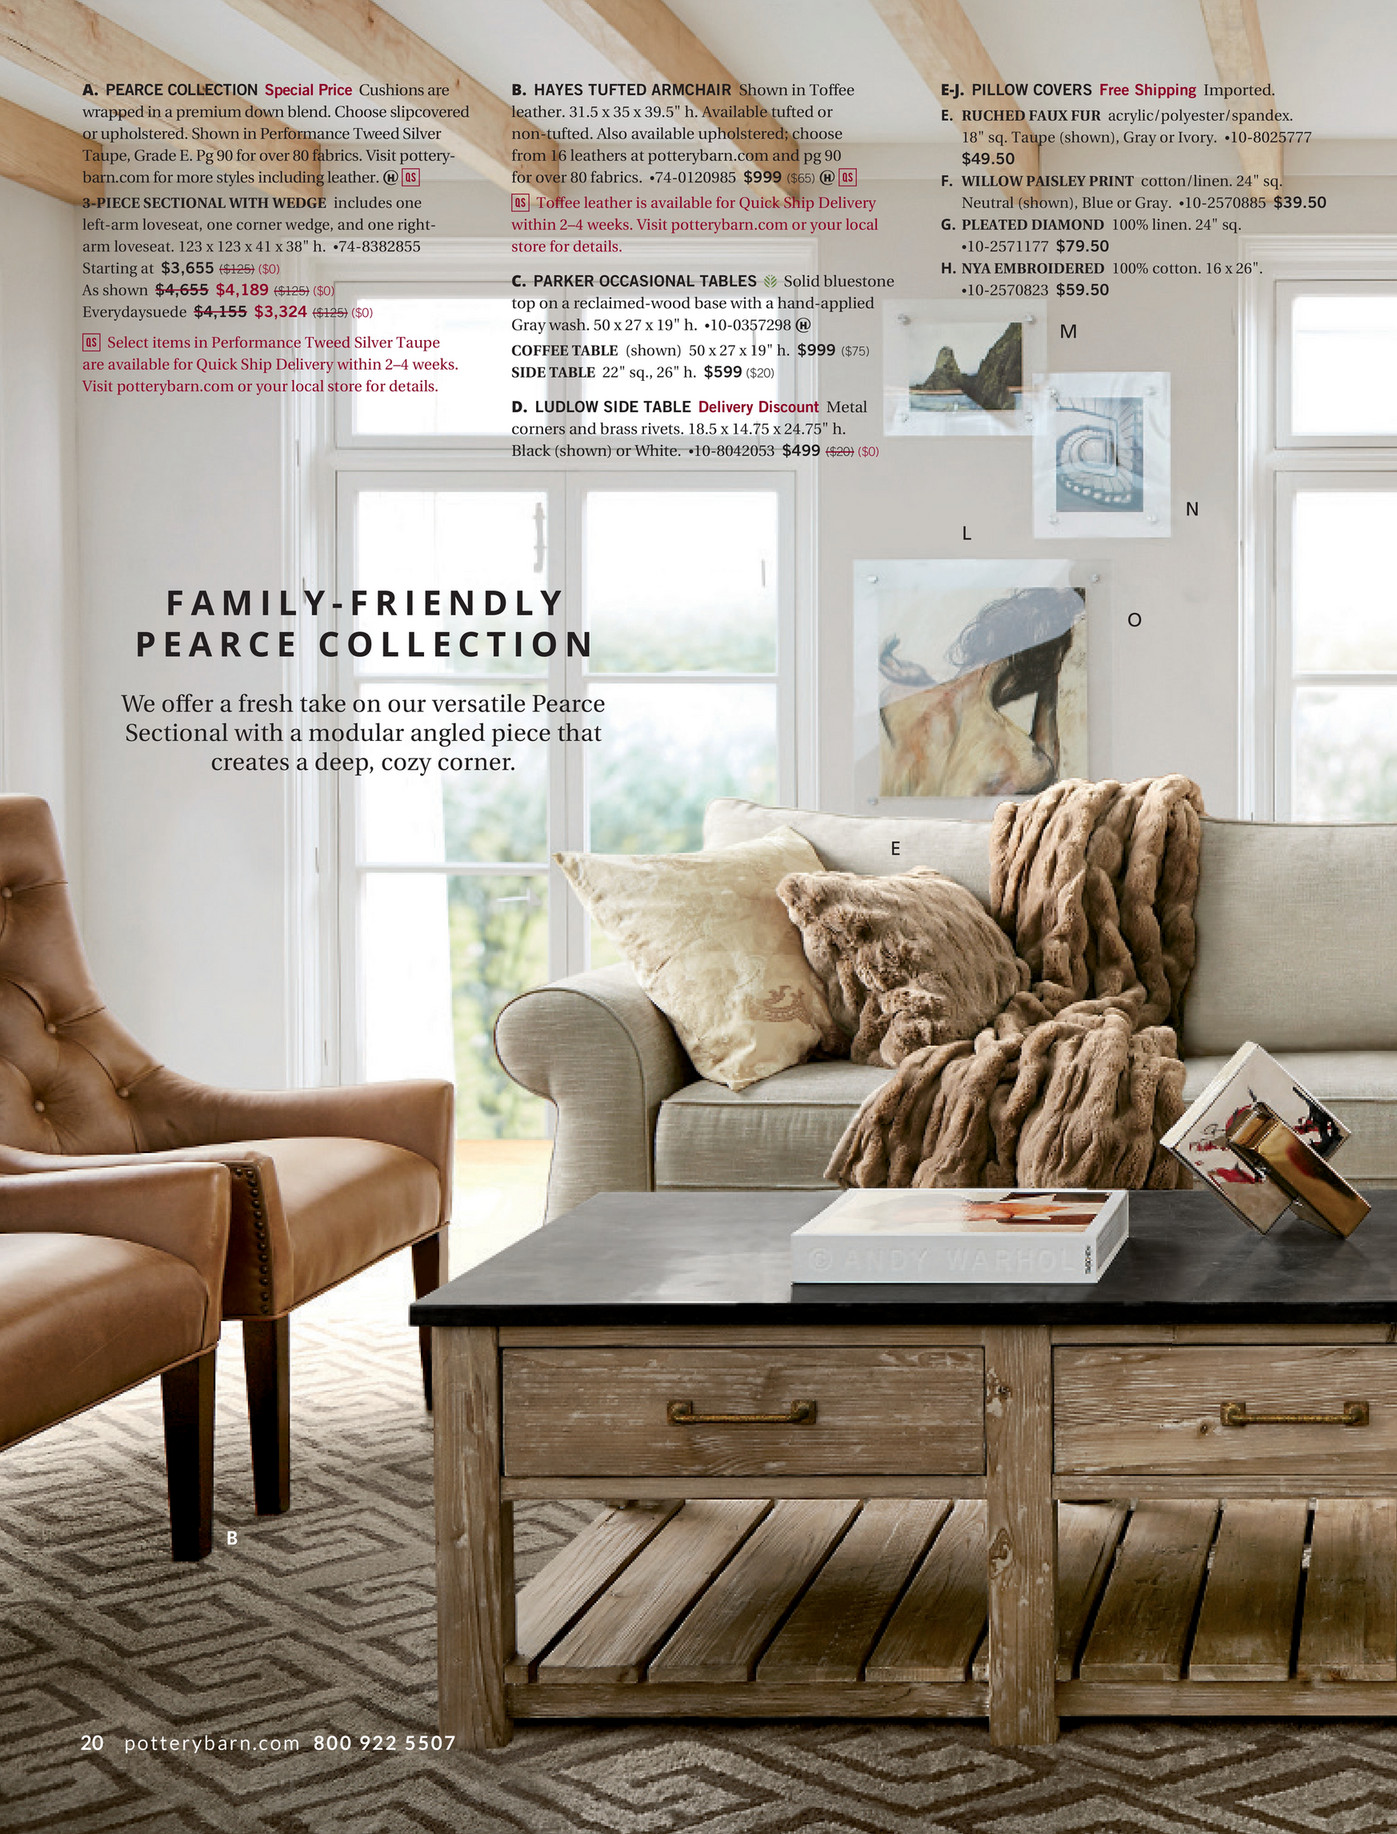 Pottery Barn Fall 2016 D2 Page 20 21